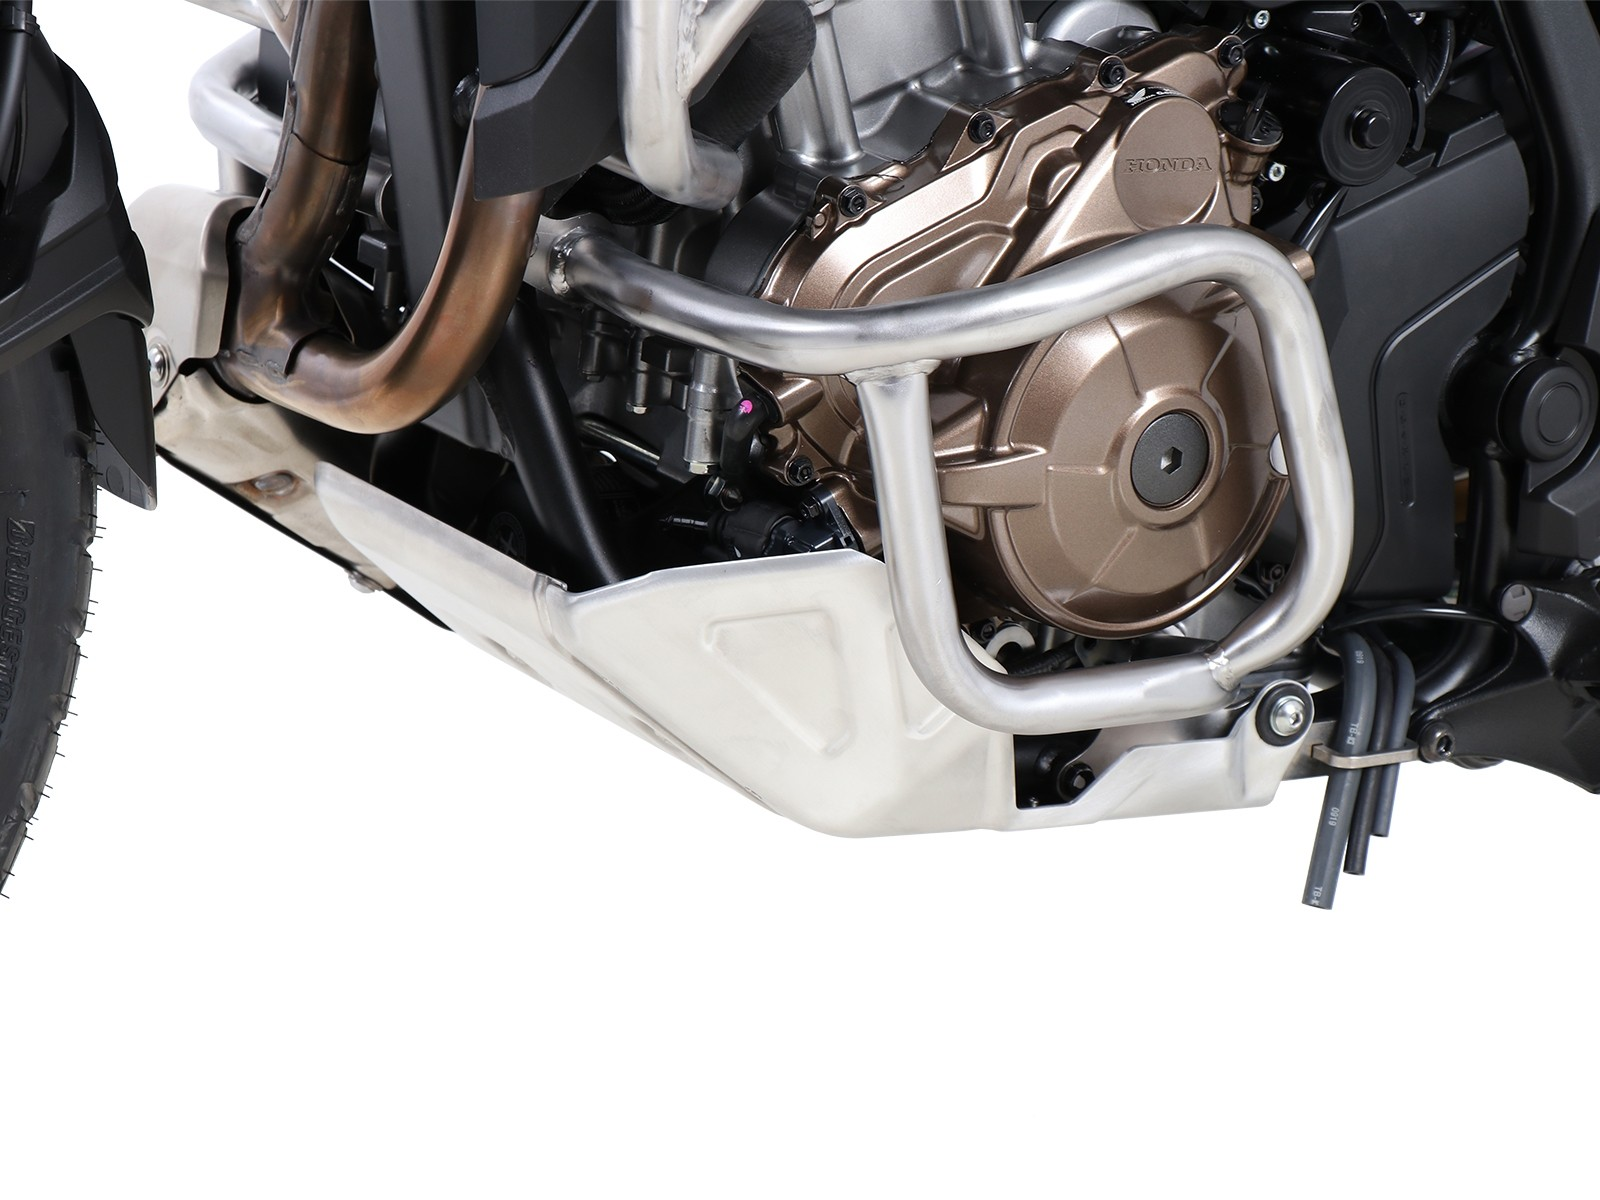 PROTECT & SAVE PACKAGE!! Hepco Honda CRF 1100 L Africa Twin 2019